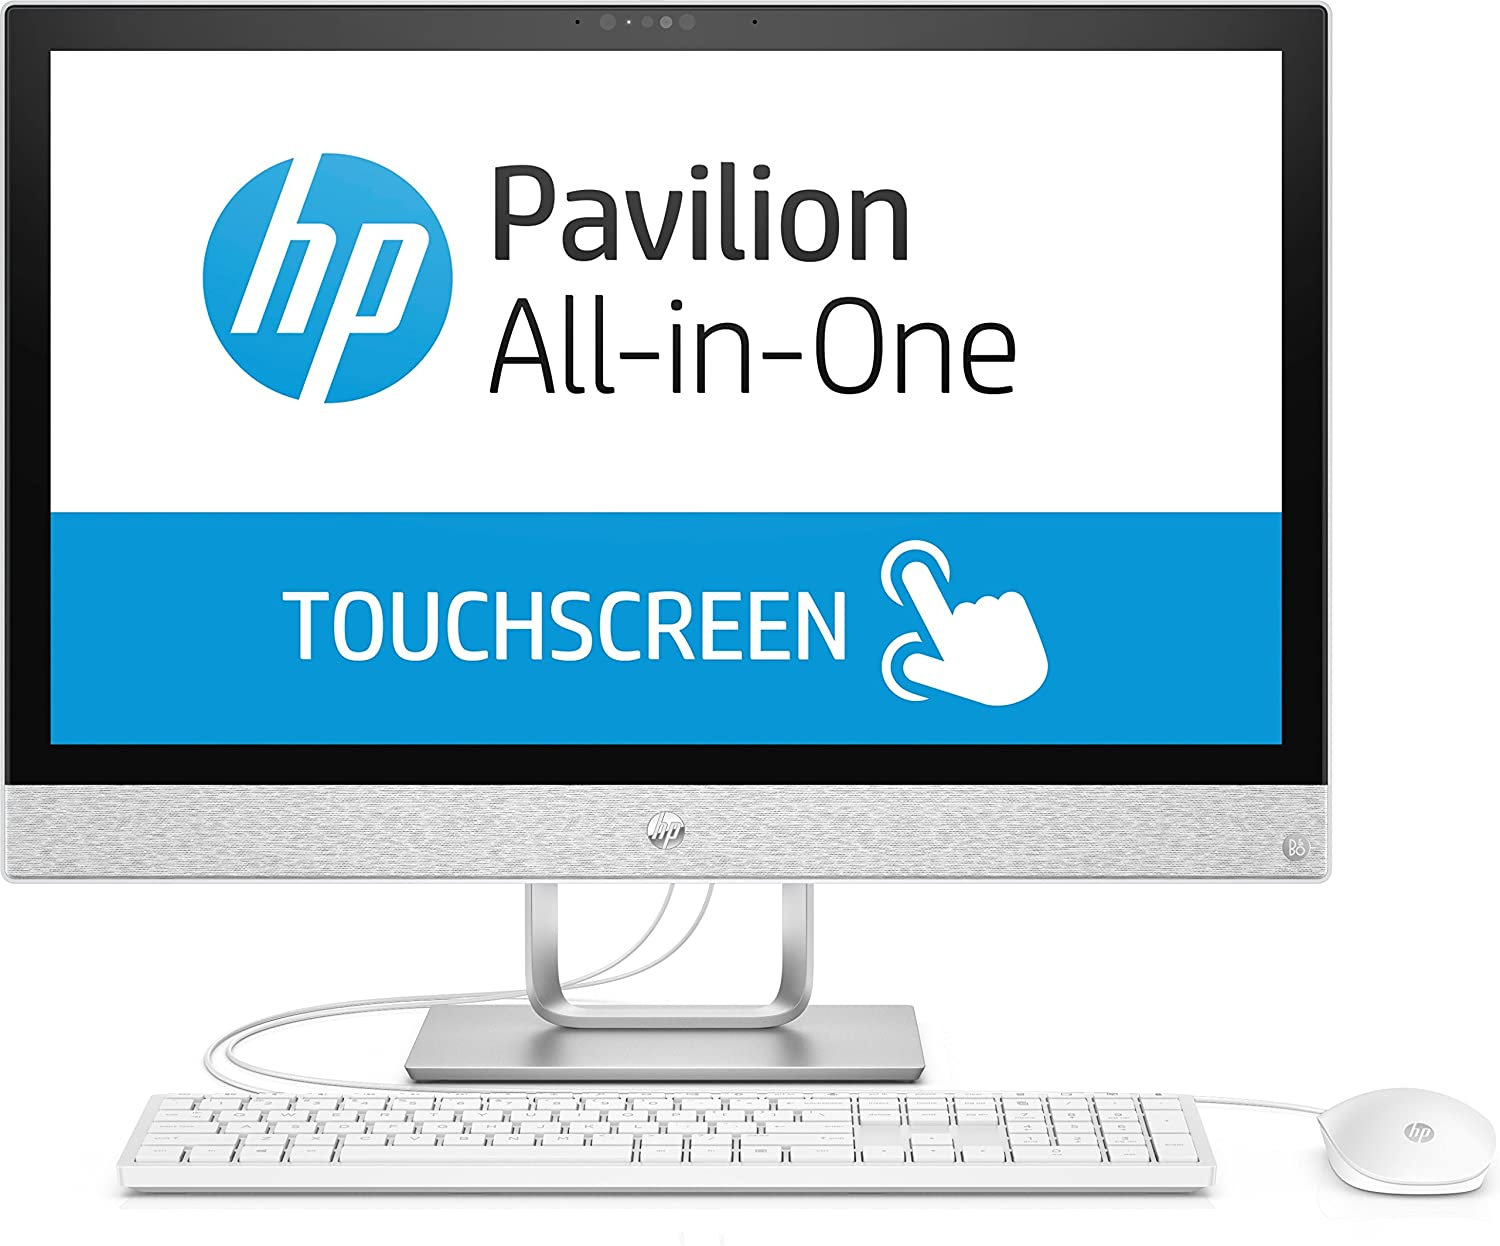 HP Pavilion 24-r163ng 1.7GHz i5-8400T Intel® Core™ i5 di ottava generazione 23.8' 1920 x 1080Pixel Touch screen Bianco PC All-in-one 4CM34EA#ABD